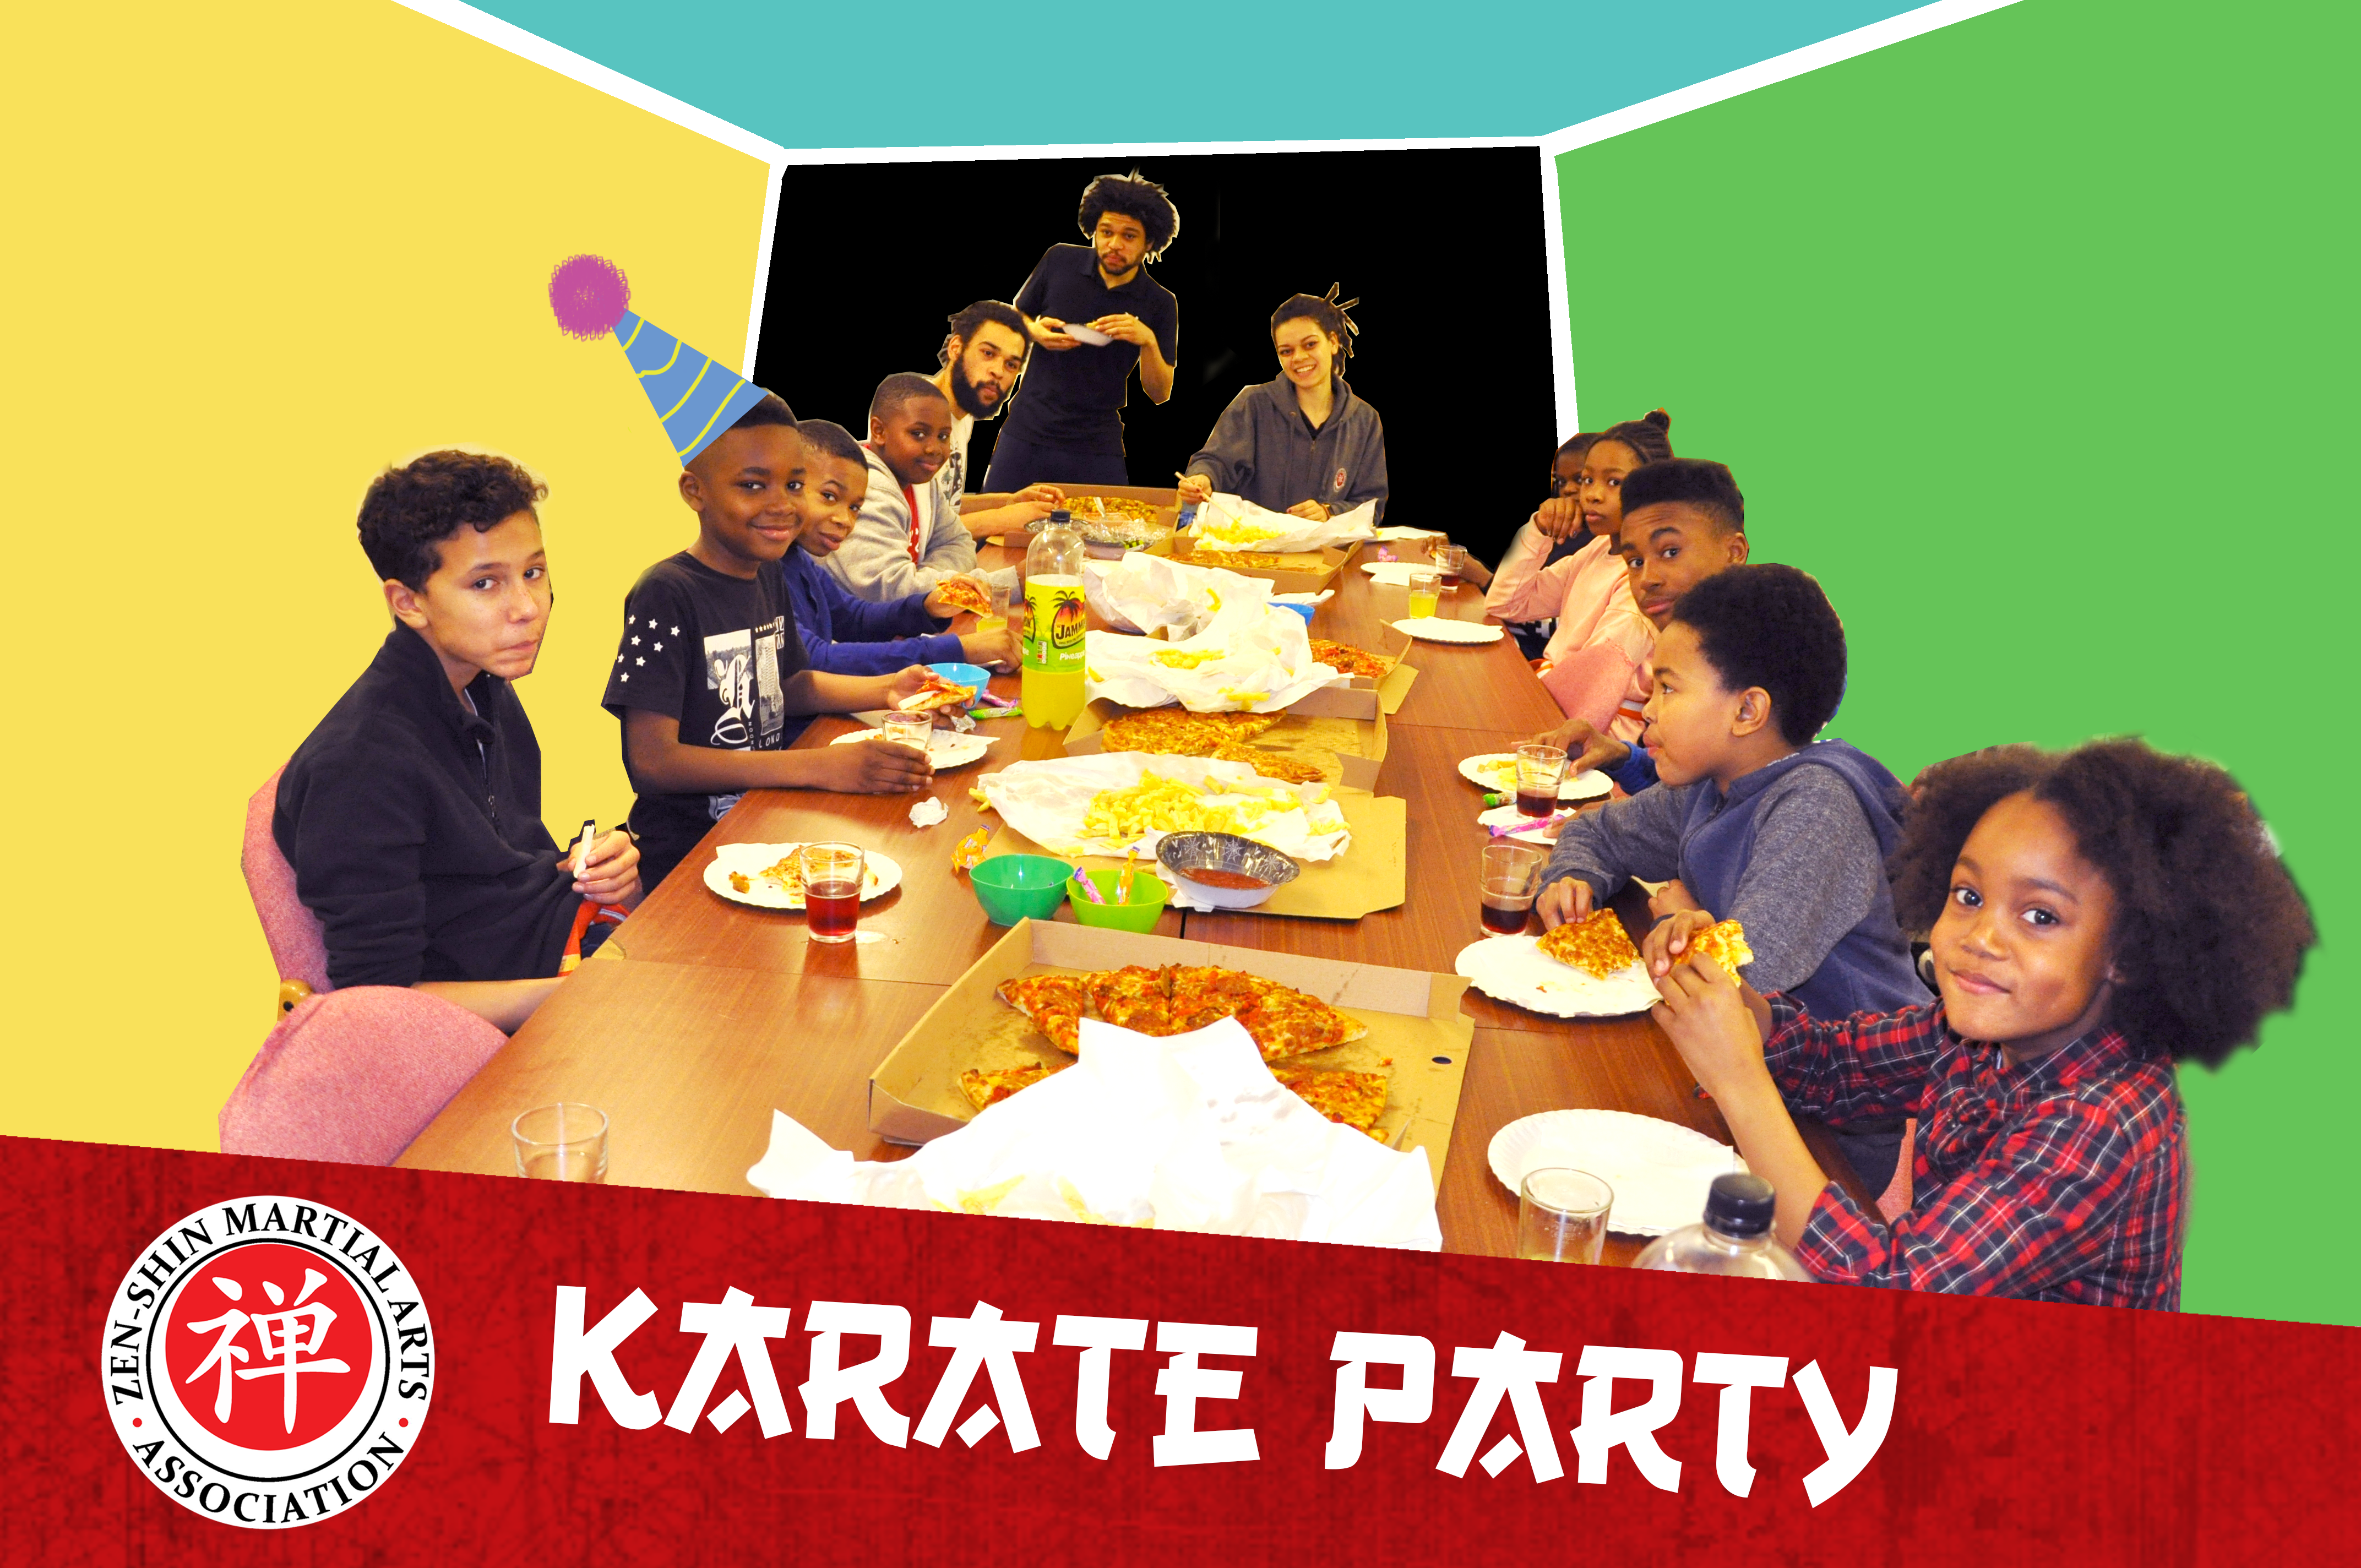 karate party